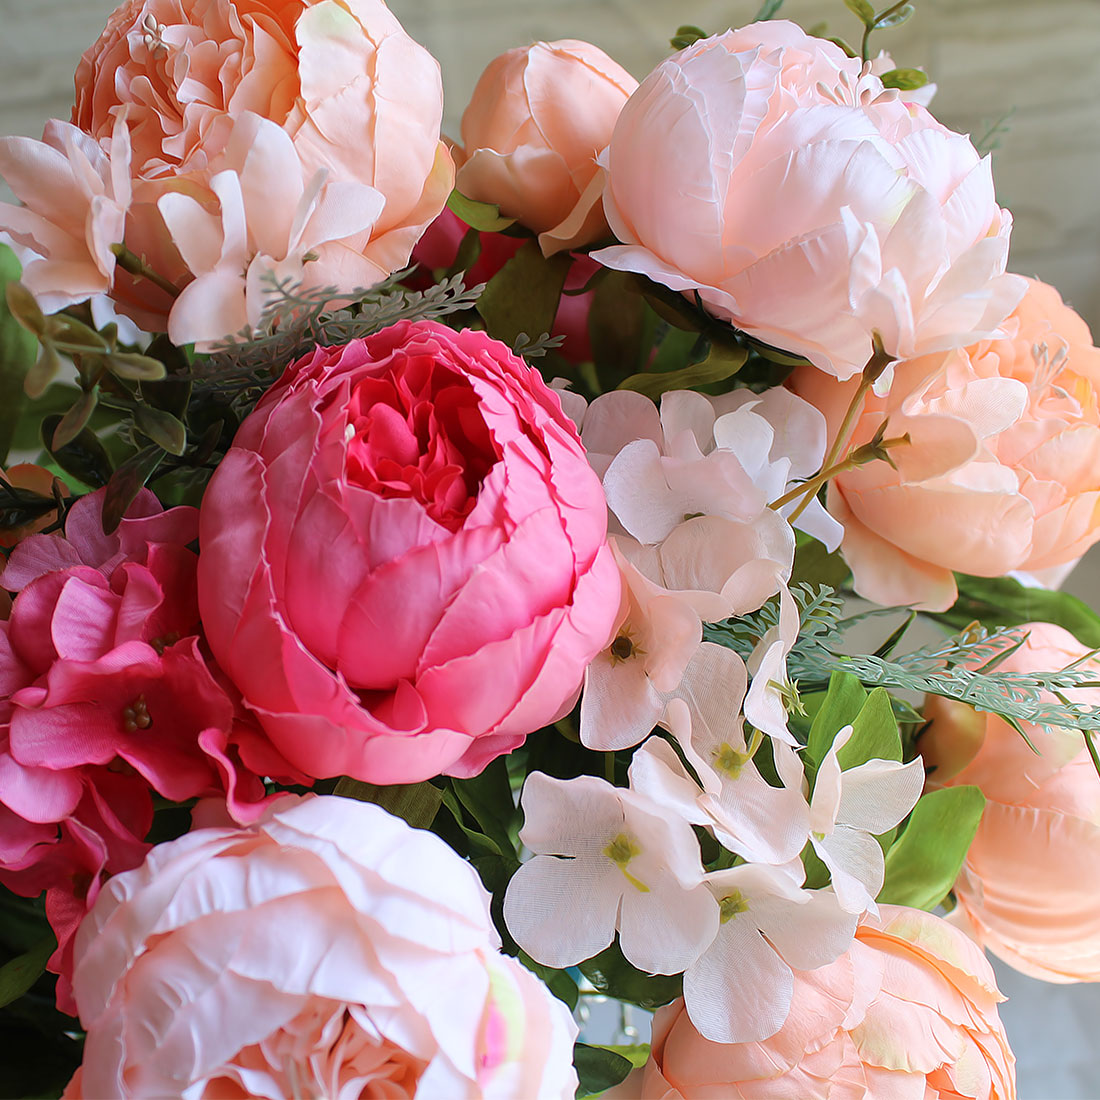 Peony flowers european fake flowers vintage artificial peony silk peony flowers european fake flowers vintage artificial peony silk flowers wedding decoration home peony flowers bouquet flores in artificial dried flowers izmirmasajfo Images